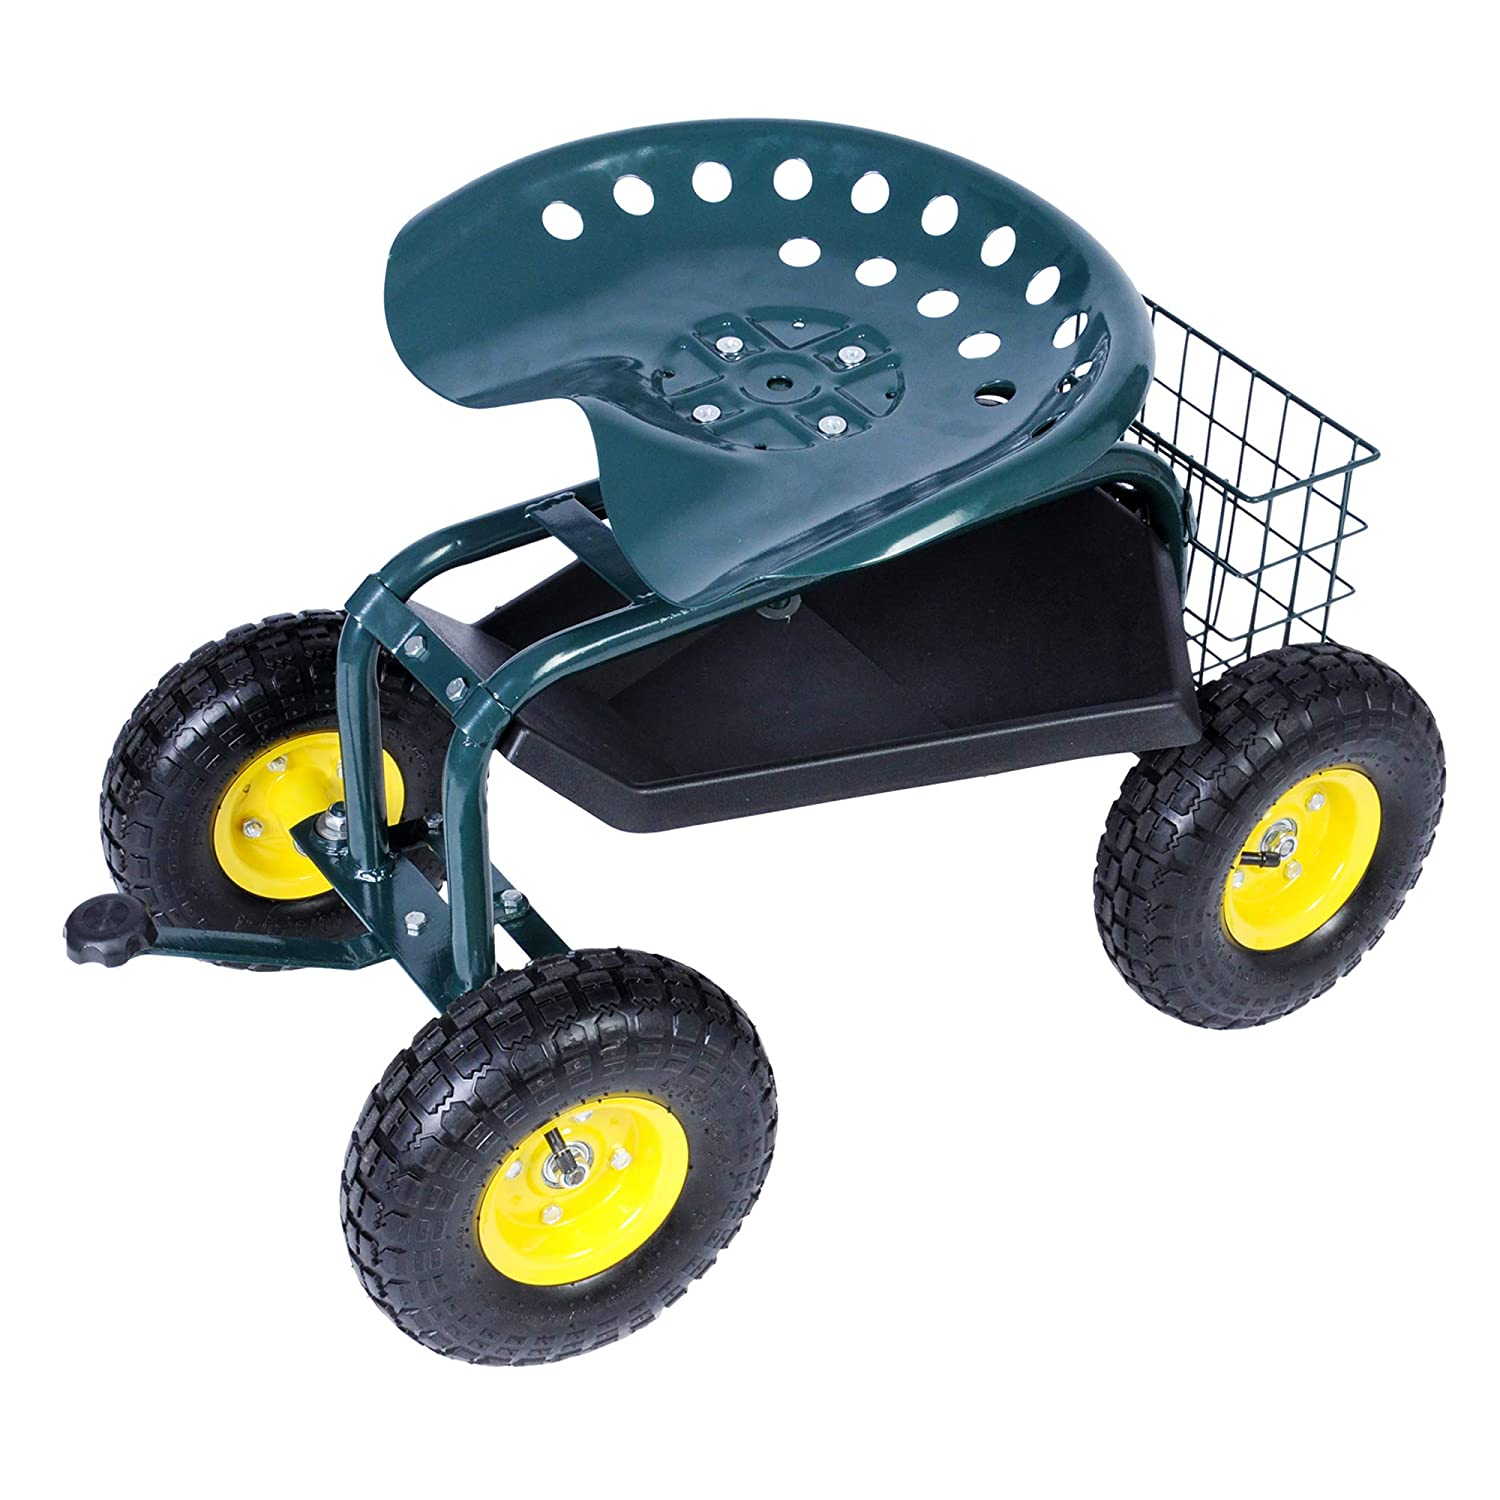 KARMAS PRODUCT Steerable Rolling Work Seat Garden Stool Cart with Tool Tray and Storage Basket Heavy Duty Scooter Green